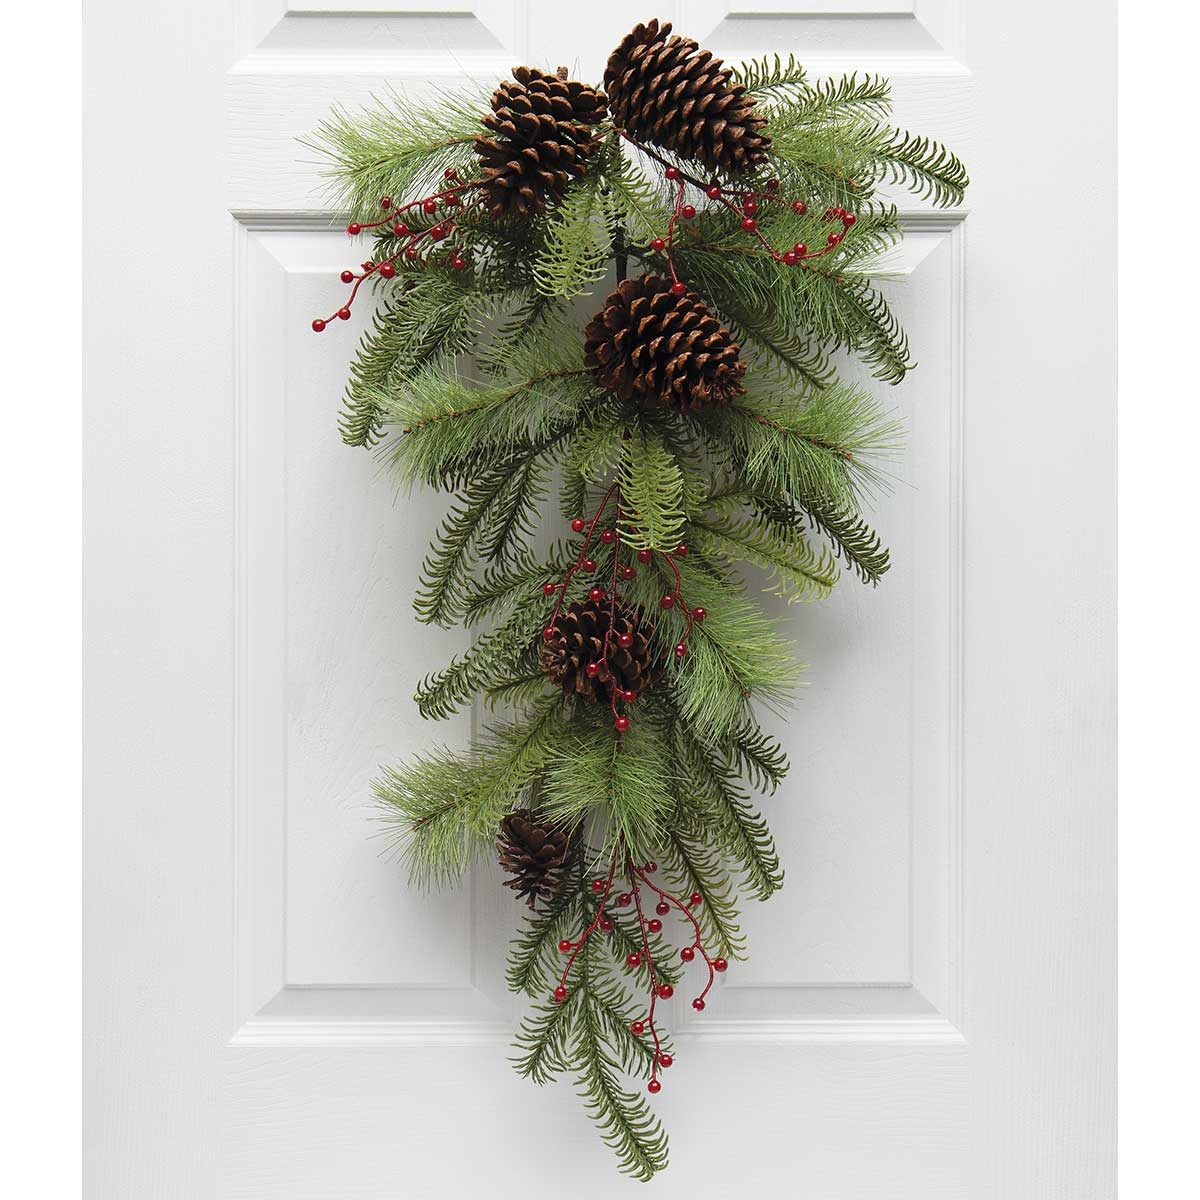 NATURAL MIX PINE BOUGH GREEN WITH RED BERRIES AND